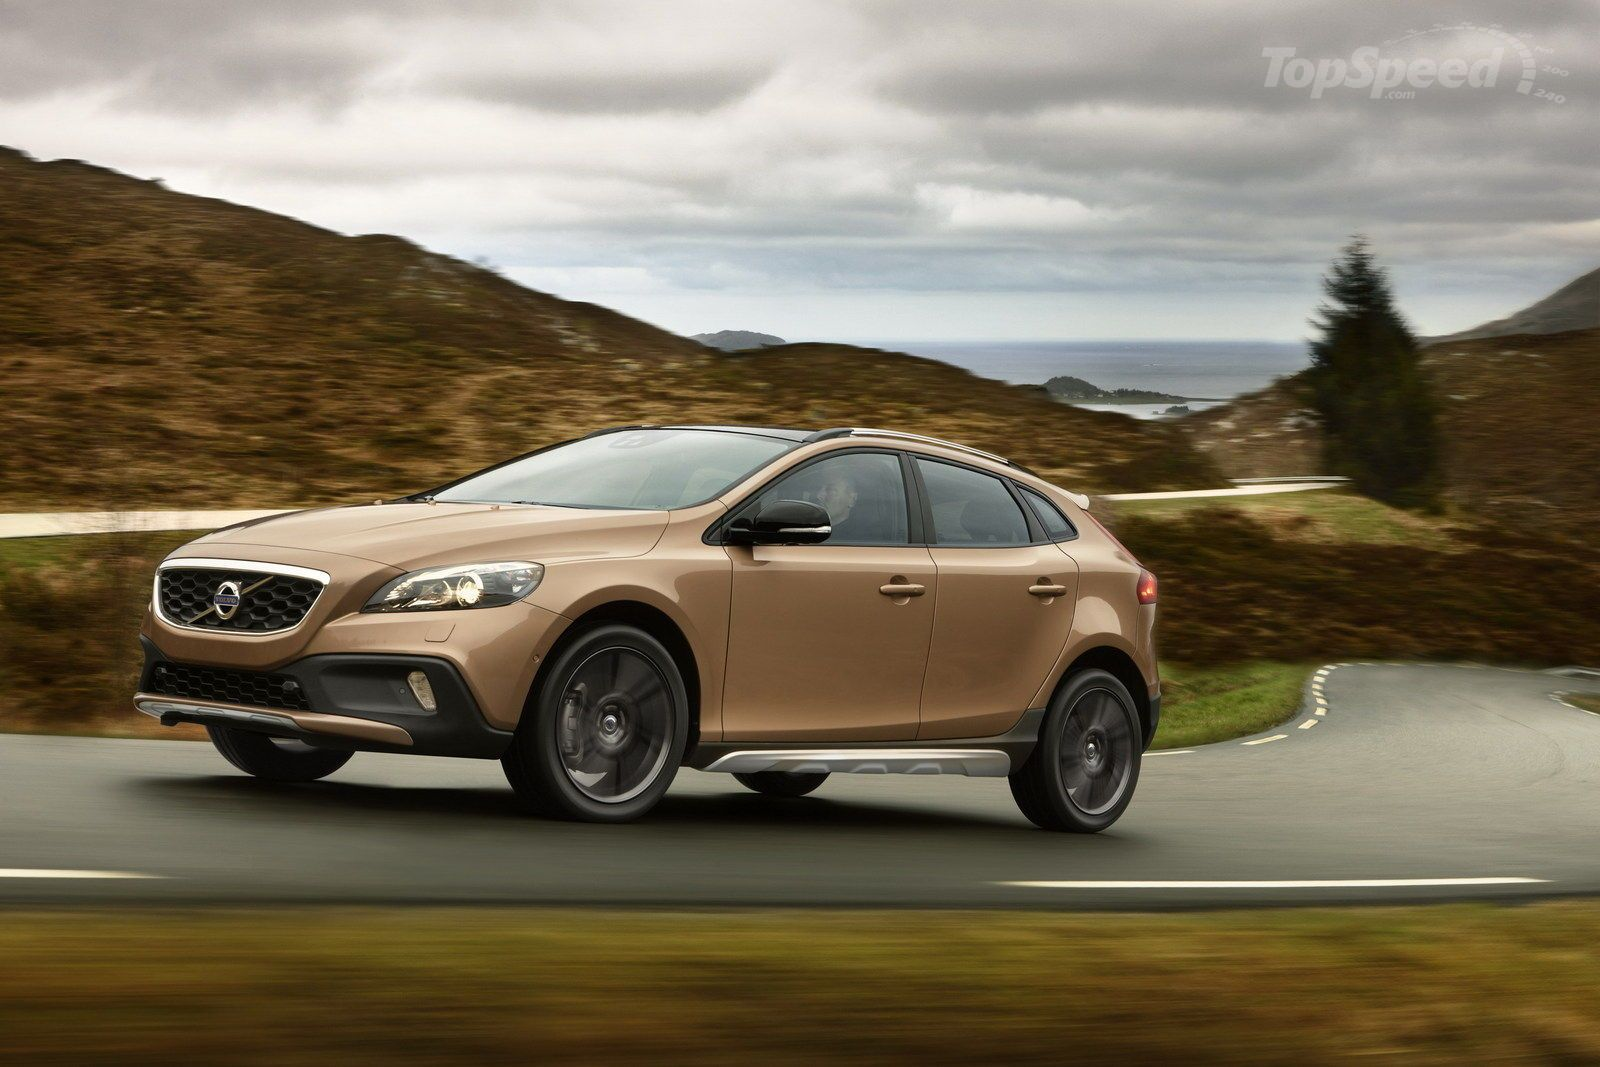 2013 2015 Volvo V40 Cross Country Pictures Photos Wallpapers And Videos Top Speed Volvo V40 Cross Country V40 Cross Country Volvo V40